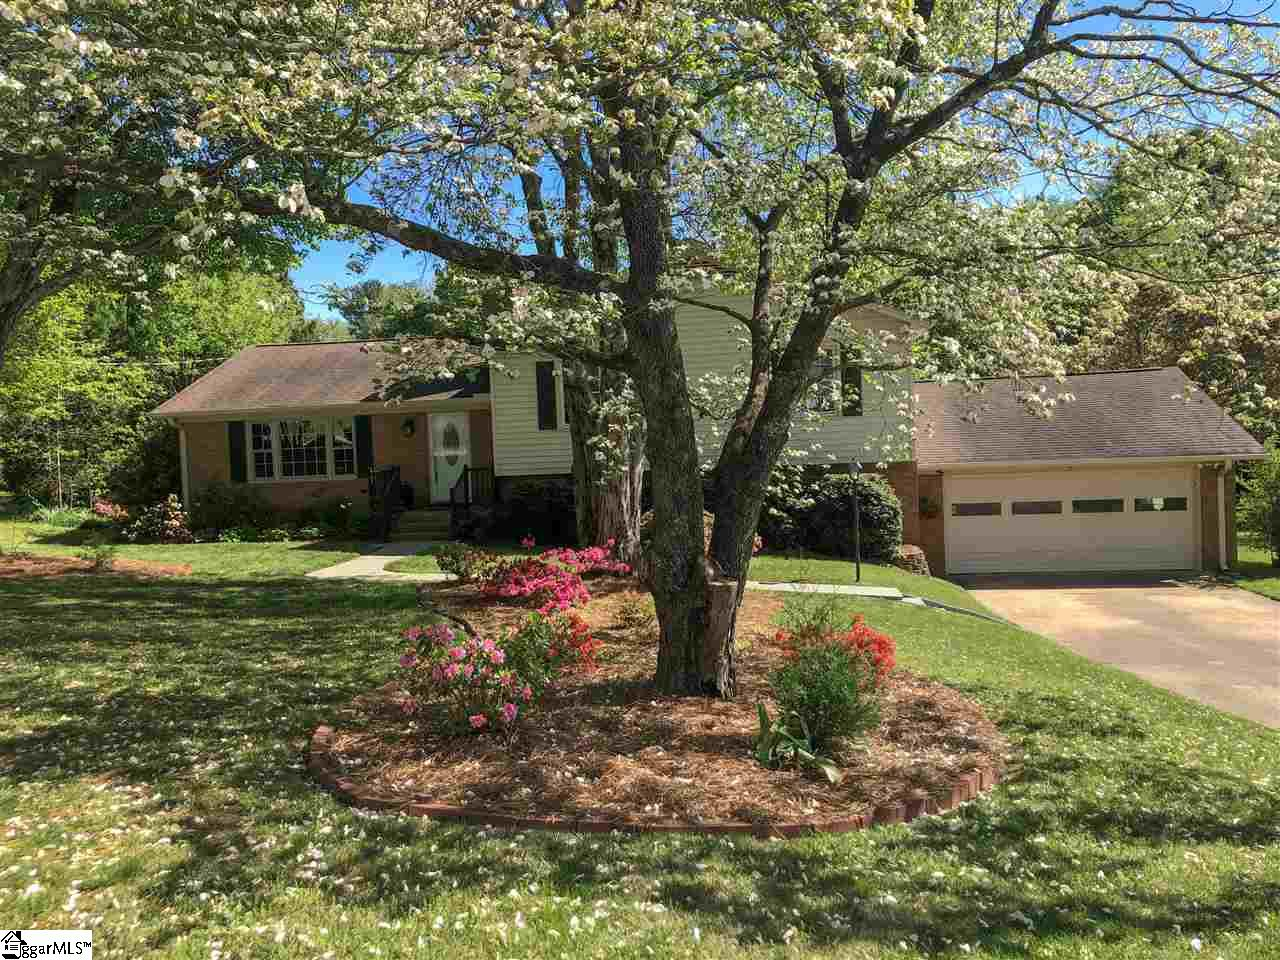 29615 4 Bedroom Home For Sale